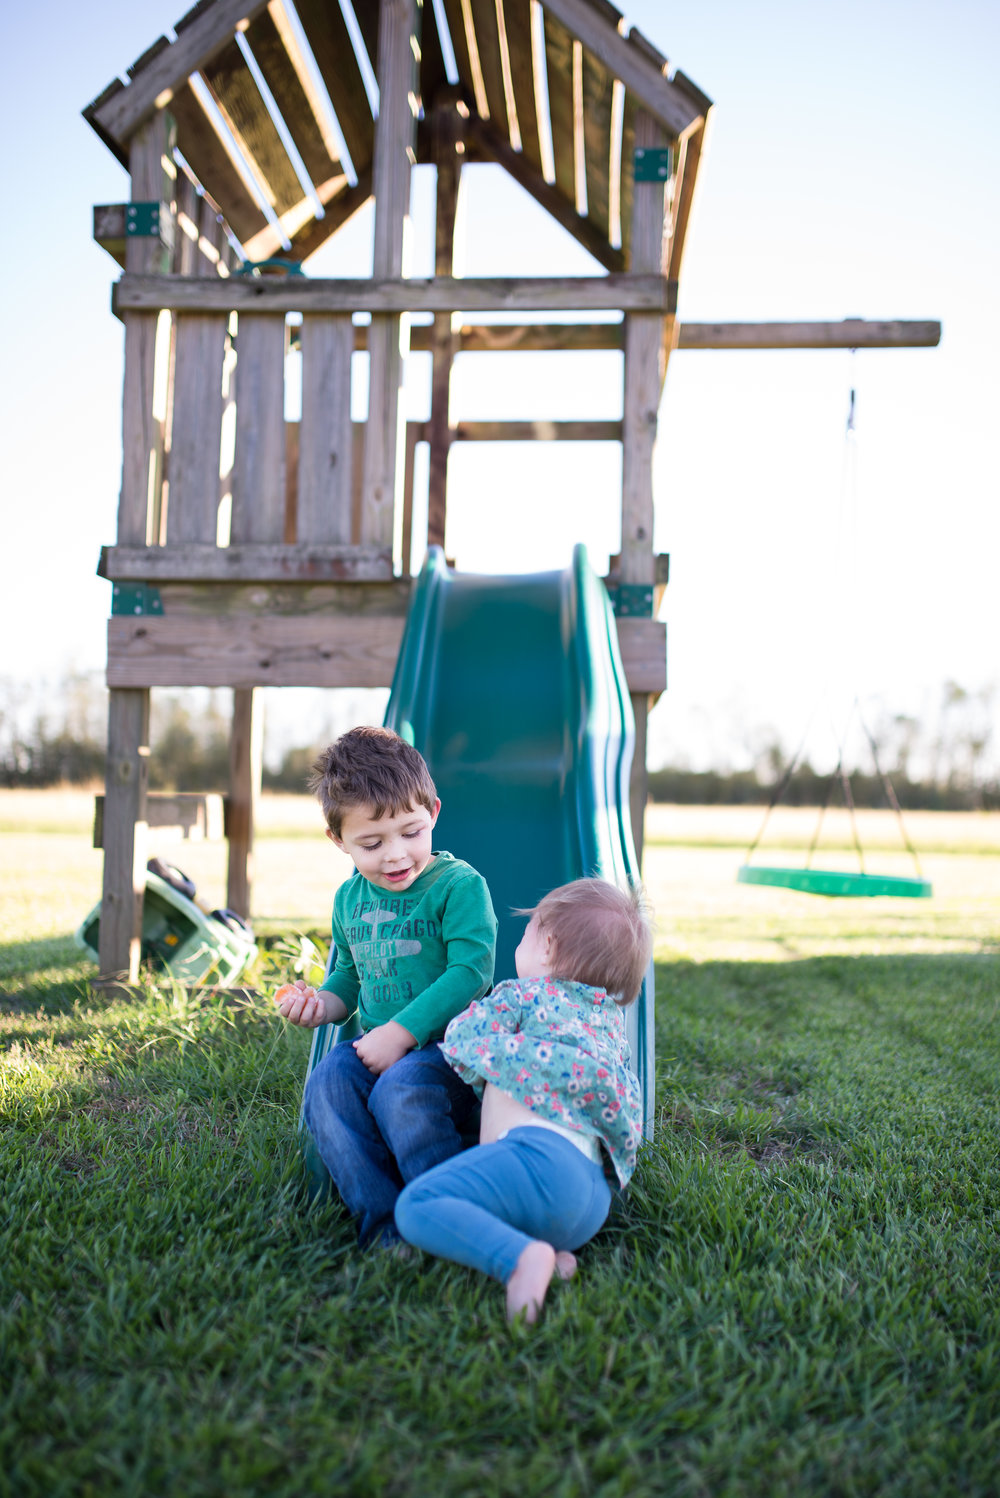 Joyful Jane Photography, Louisiana family photography, kids playing outside, backyard fun